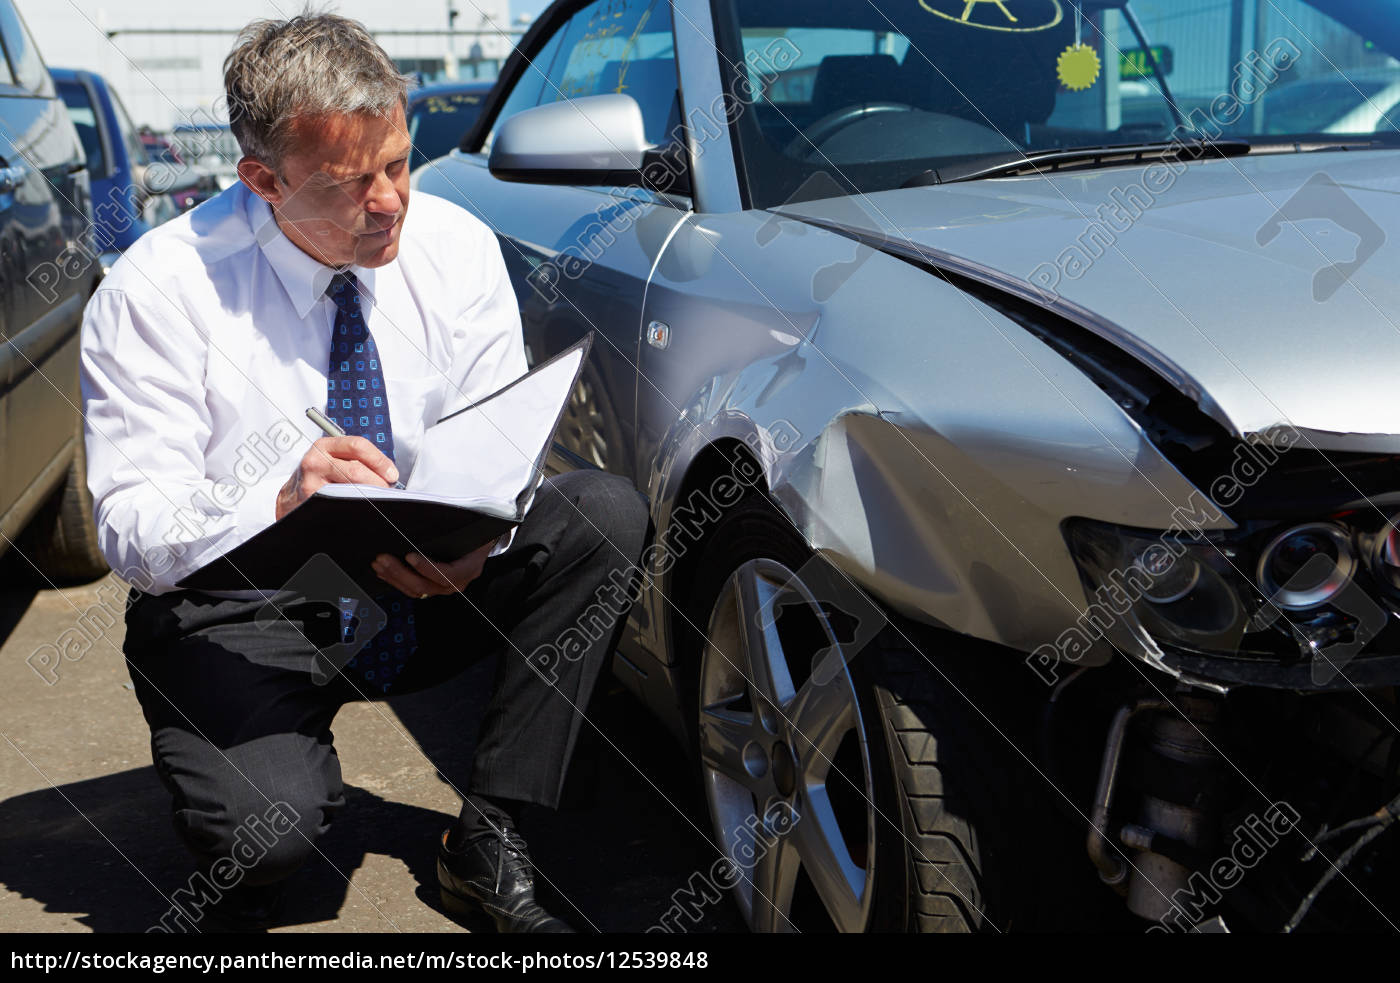 car, vehicle, insurance, insurance agent, claims investigator, auto accidents - 12539848